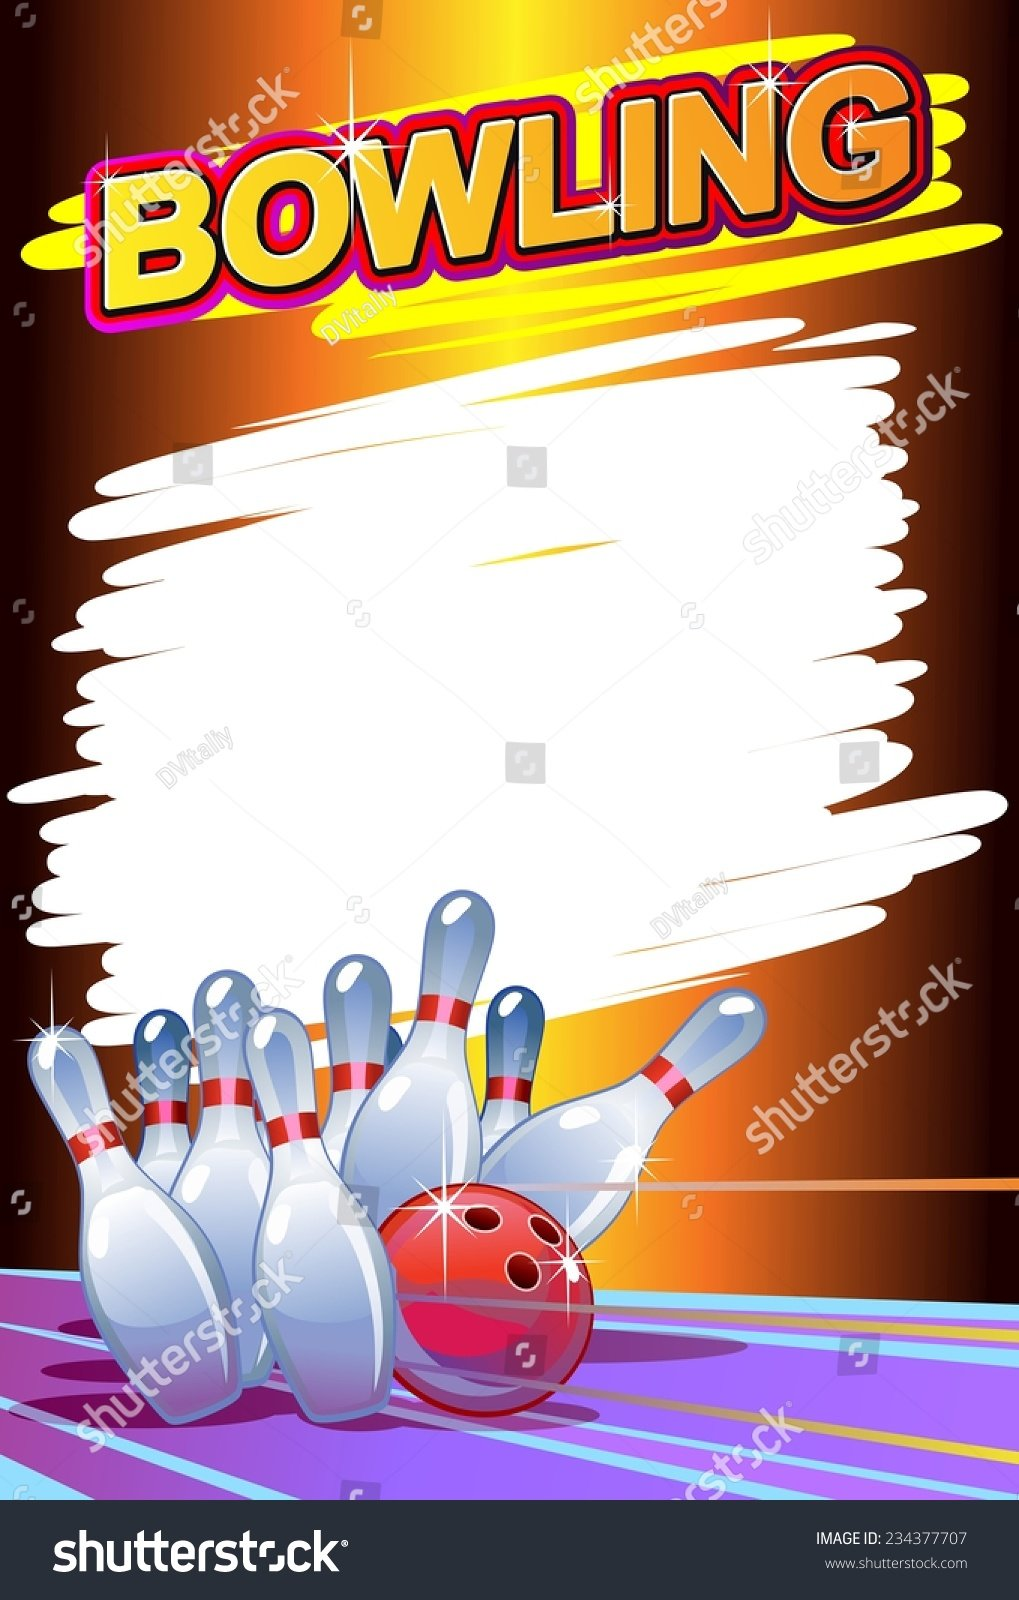 20 Bowling Party Flyer Template Christmas White Elephant Ug Card